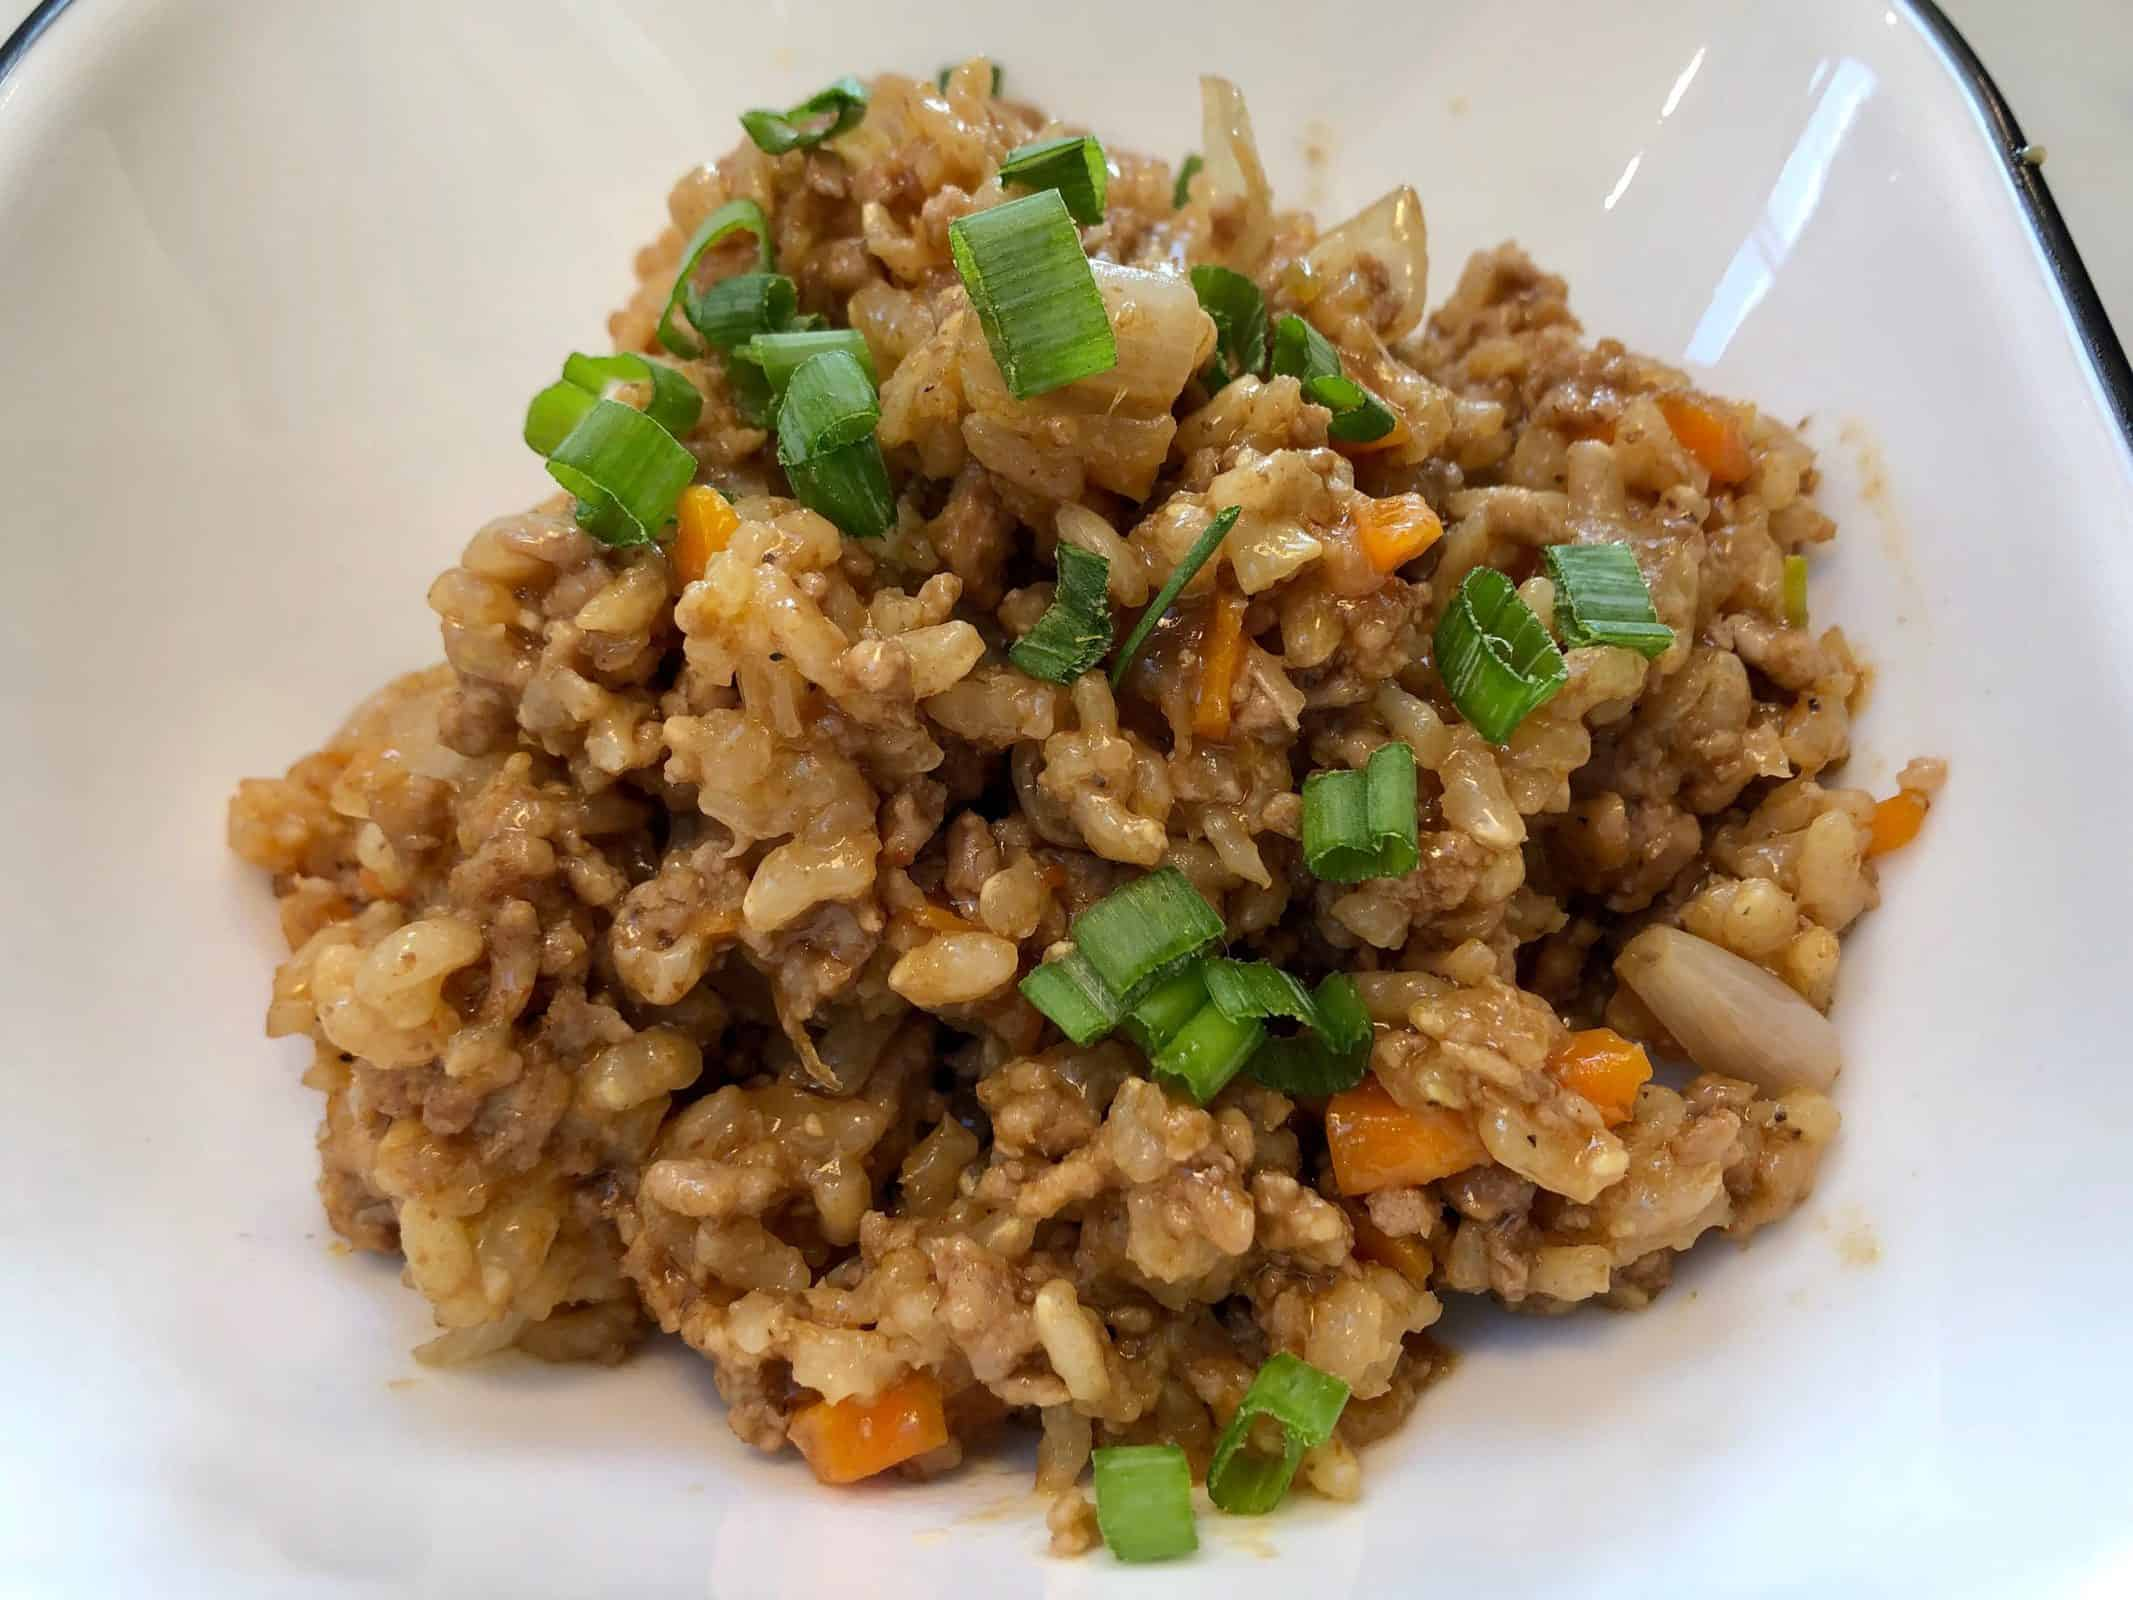 Ground Pork Stir Fry